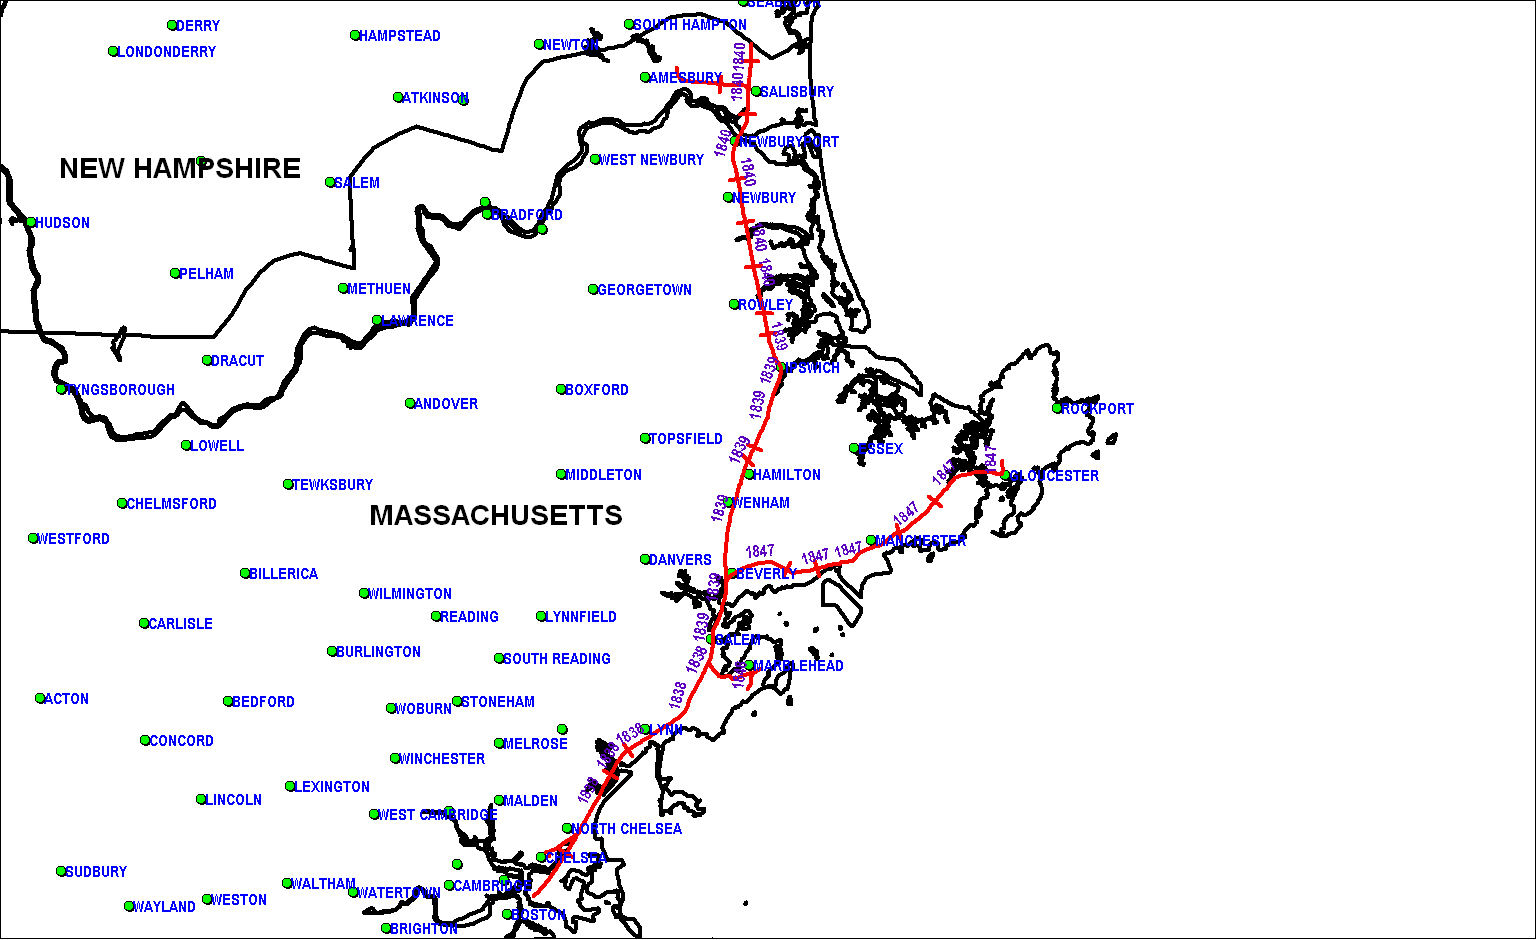 Eastern Railroad of Massachusetts Map as of 1850